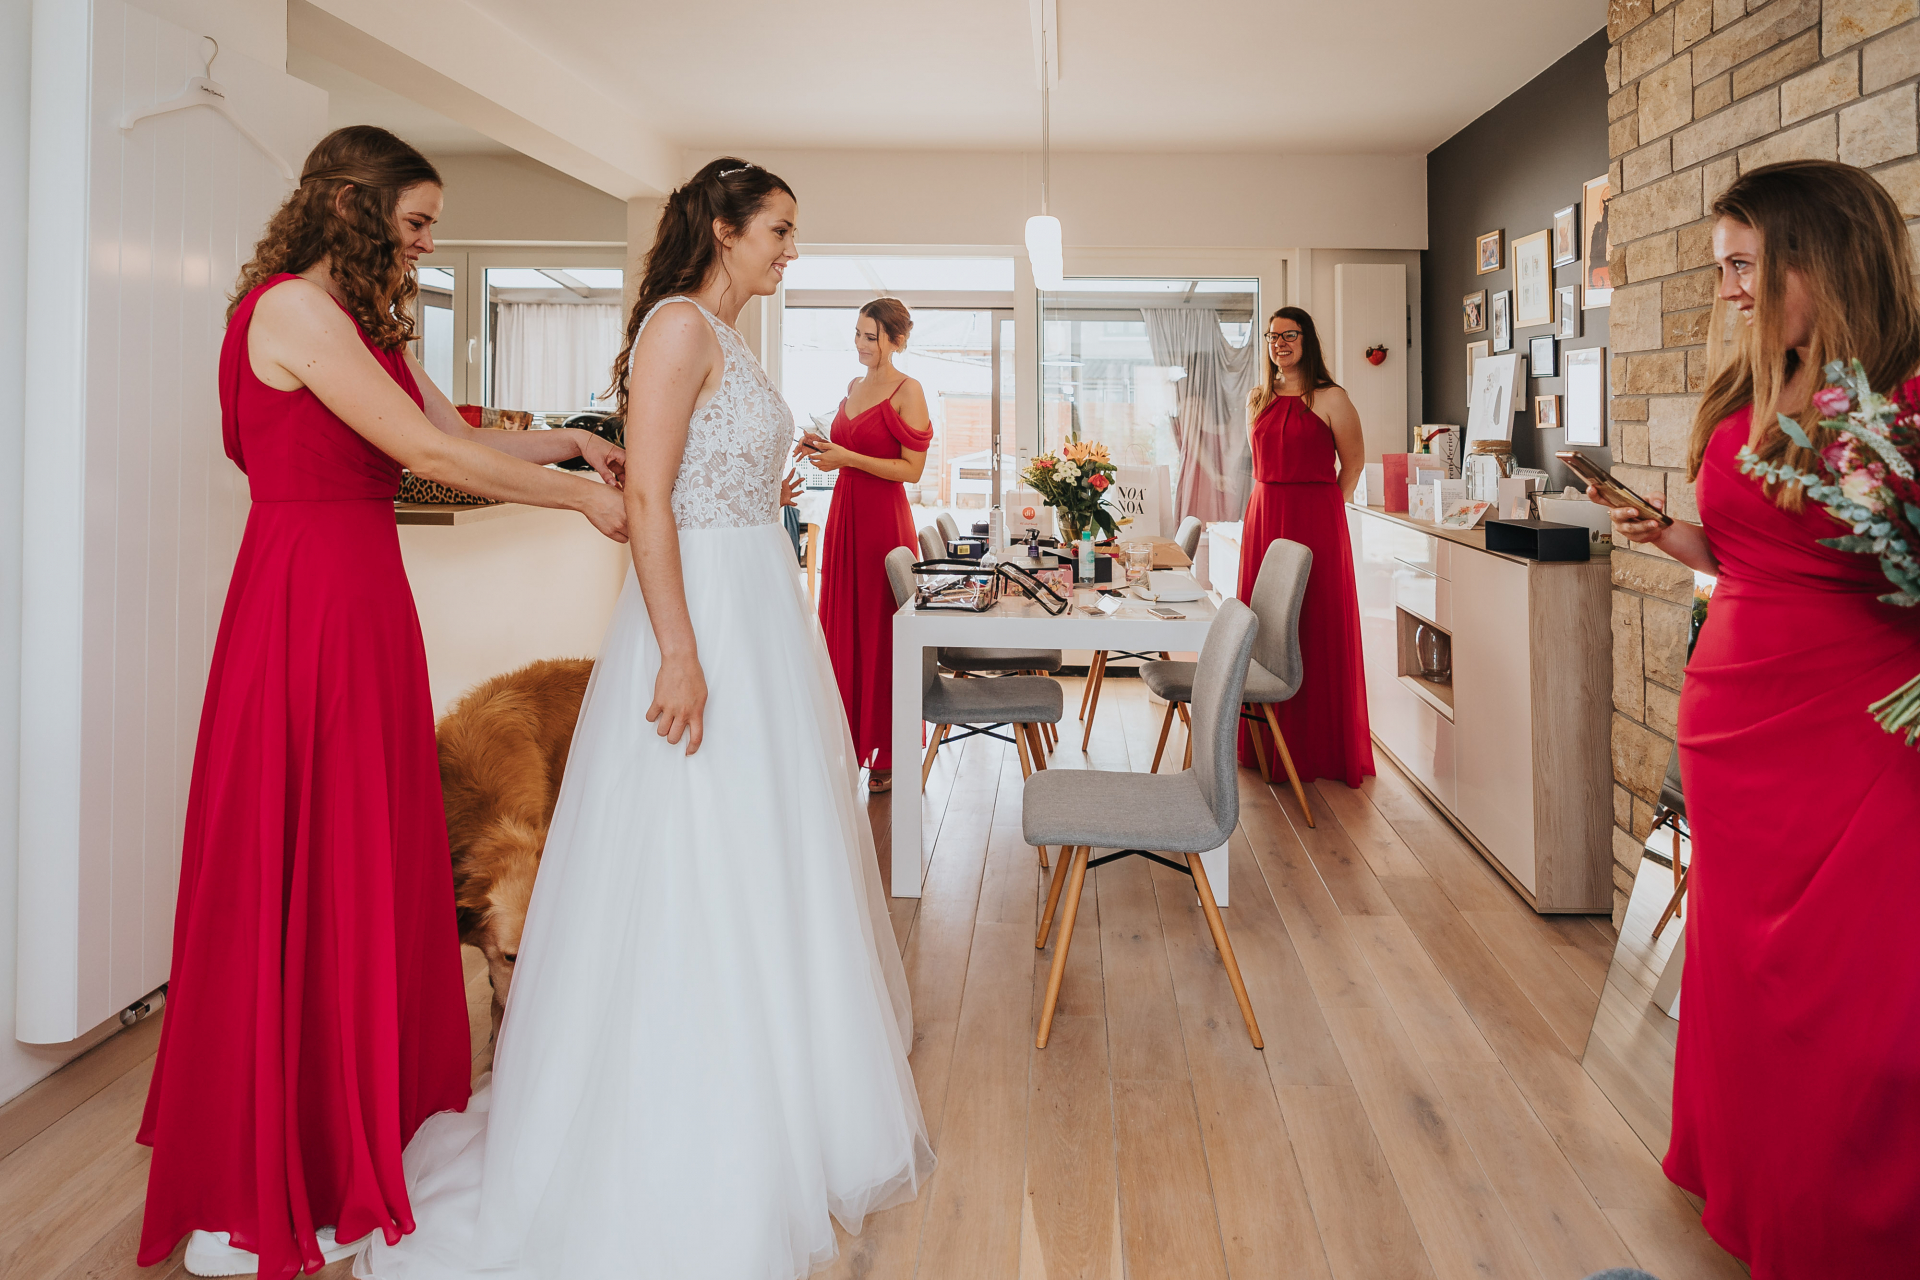 Brides Home Elopement Photography - Belgium COVID | The bride is getting dressed, assisted by her sister